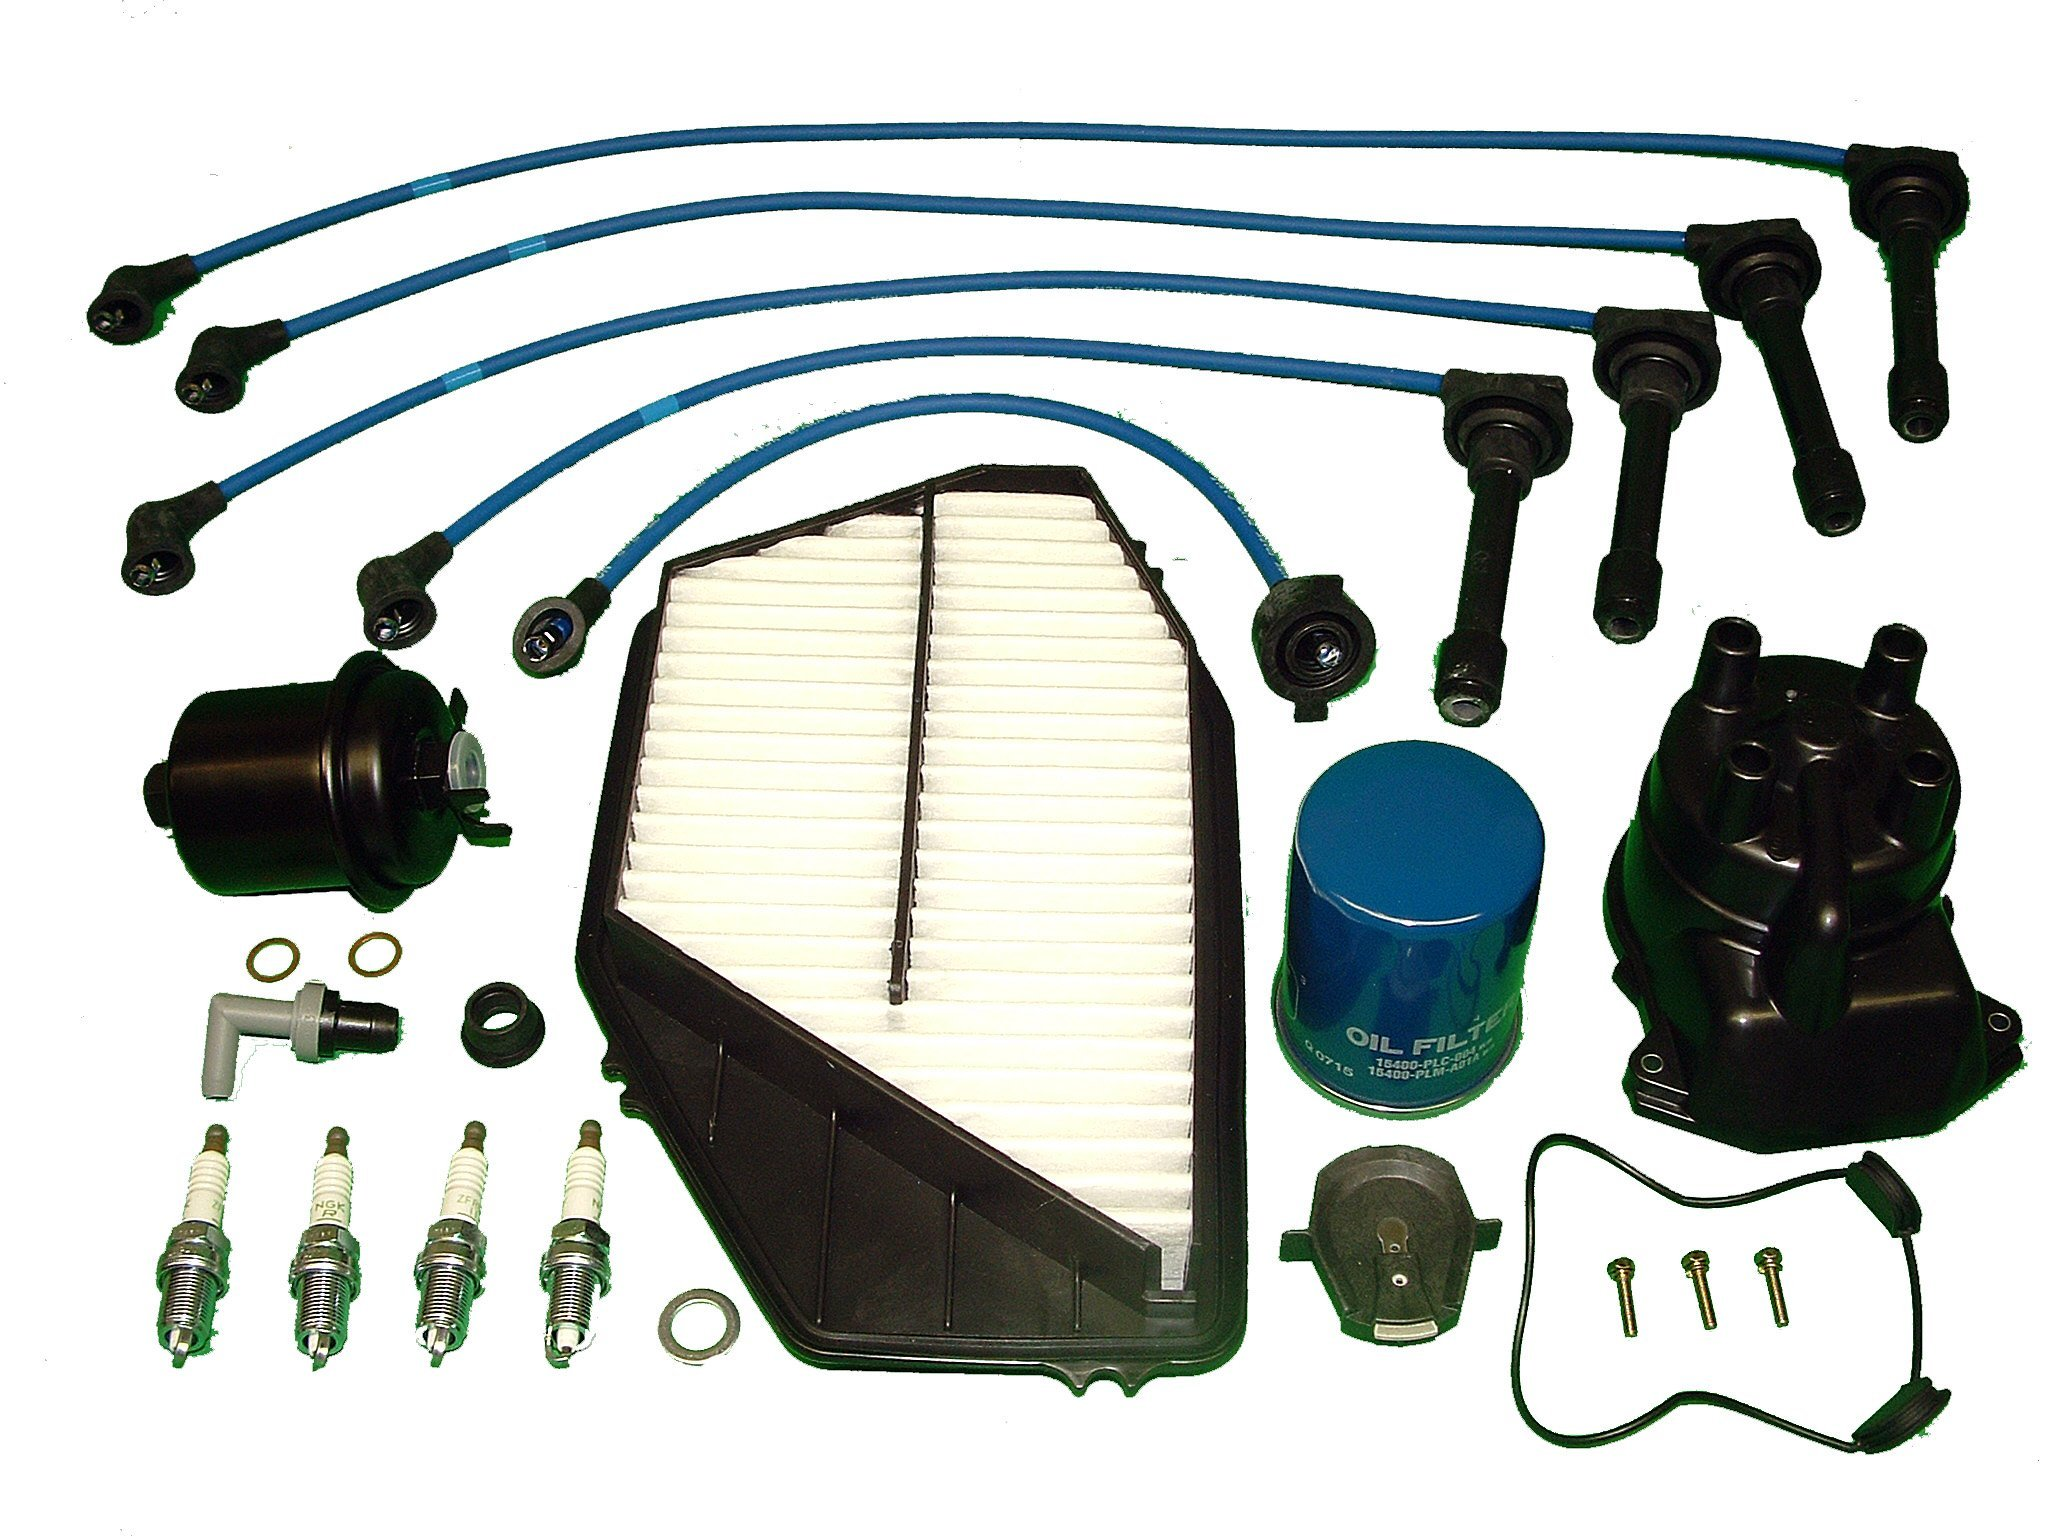 Tune Up Kit Replacement For Honda Accord EX 1994 to 1997 Includes oil air fuel pcv valve and grommet NGK Wires and Spark Plugs Japanese made distributor cap and rotor by TBK Timing Belt Kit